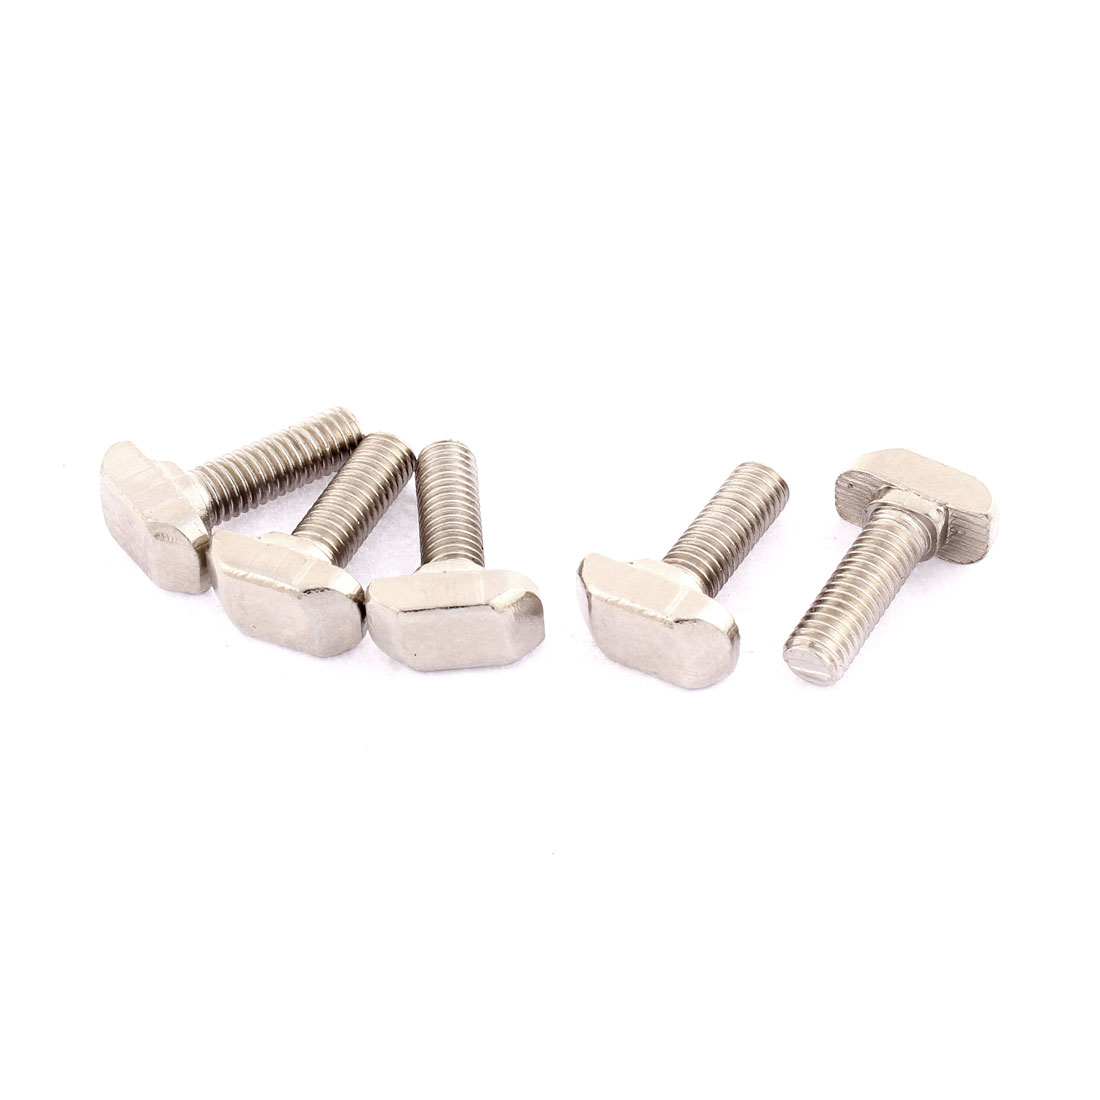 M6 Thread Metal T-Slot Drop-In Stud Sliding Screw Bolt Silver Tone 5pcs